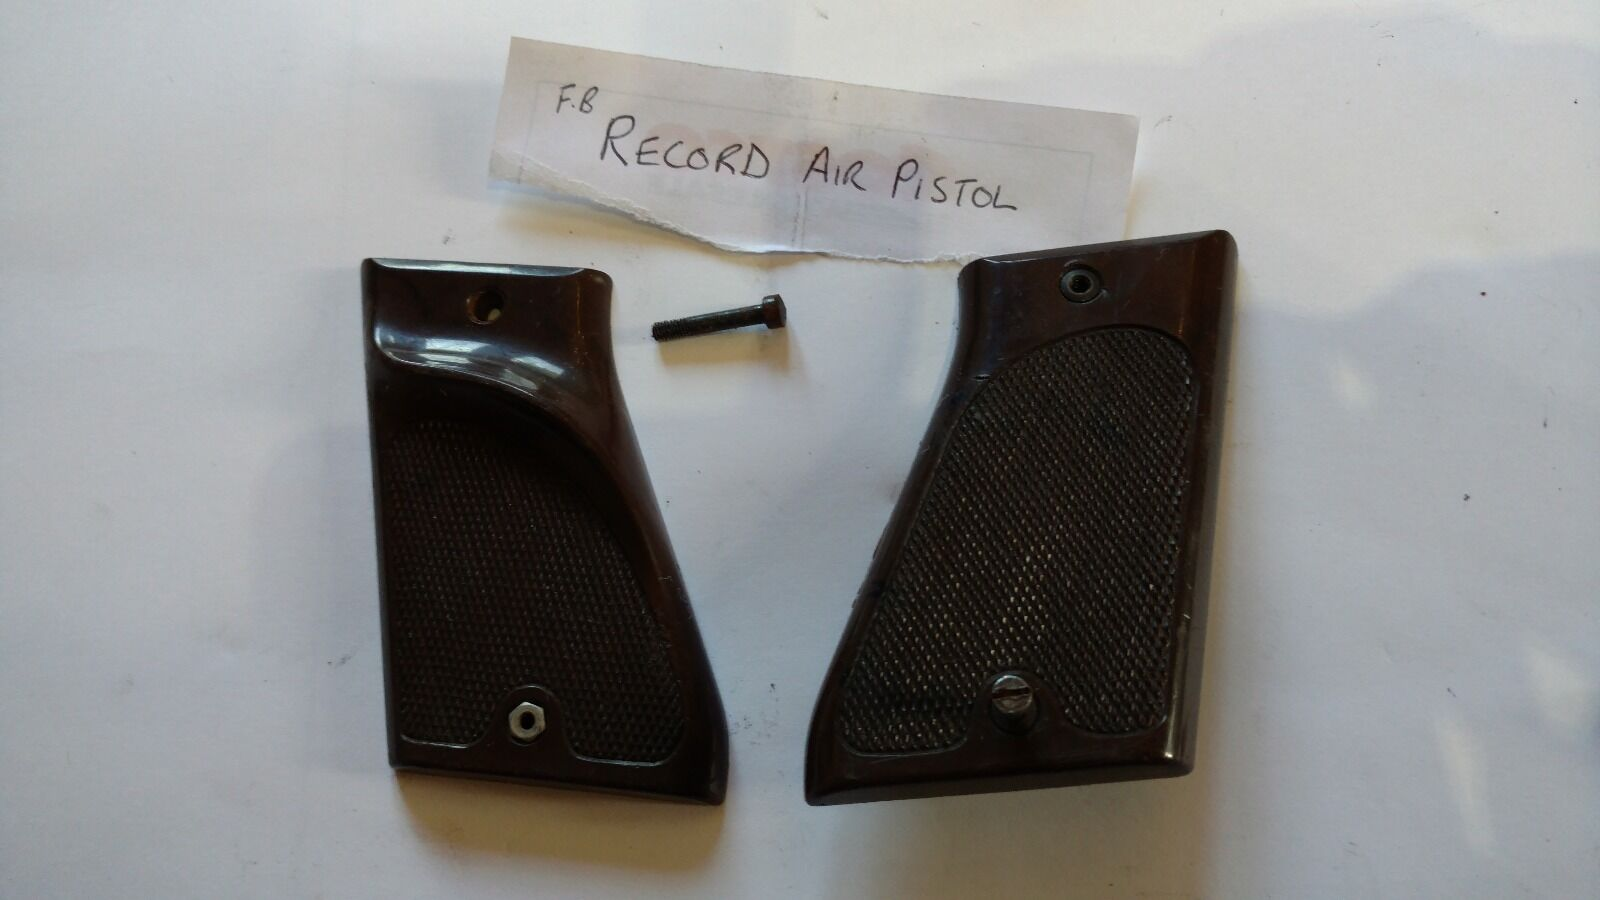 F B RECORD BROWN PLASTIC GRIPS WITH SCREWS